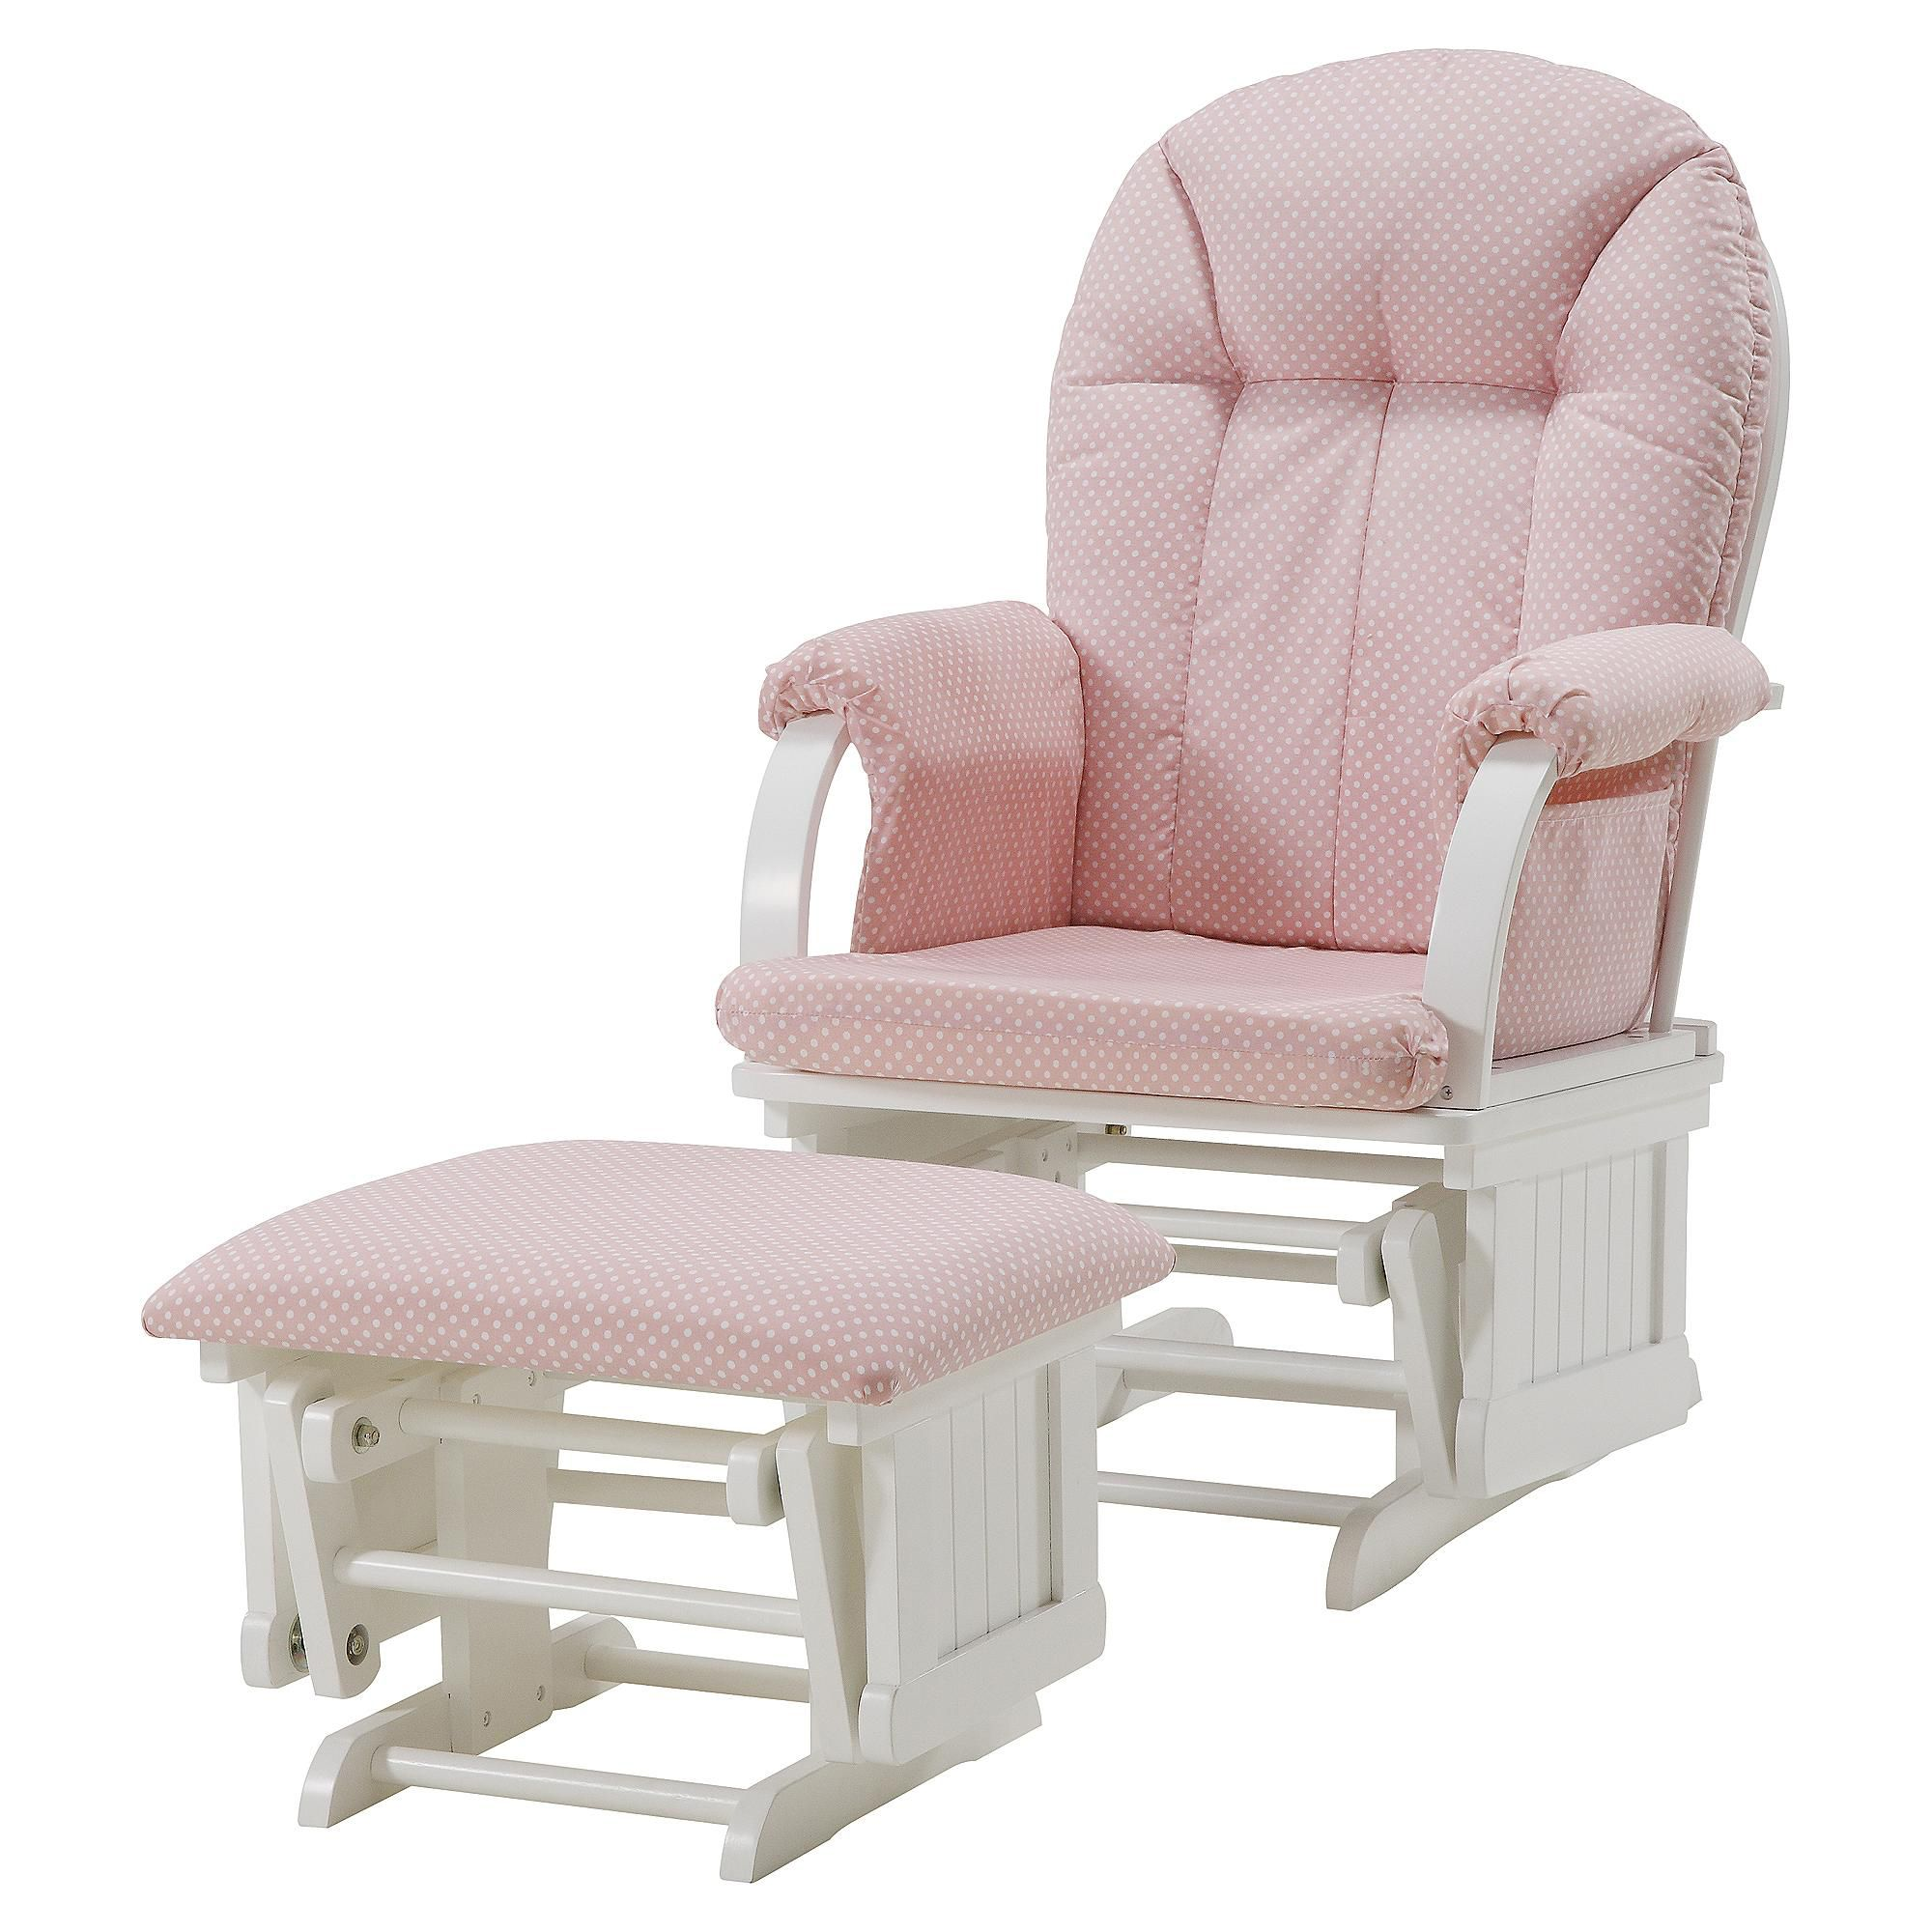 polka dot rocking chair cushions king throne manufacturers dorel cottage hill glider white with pink